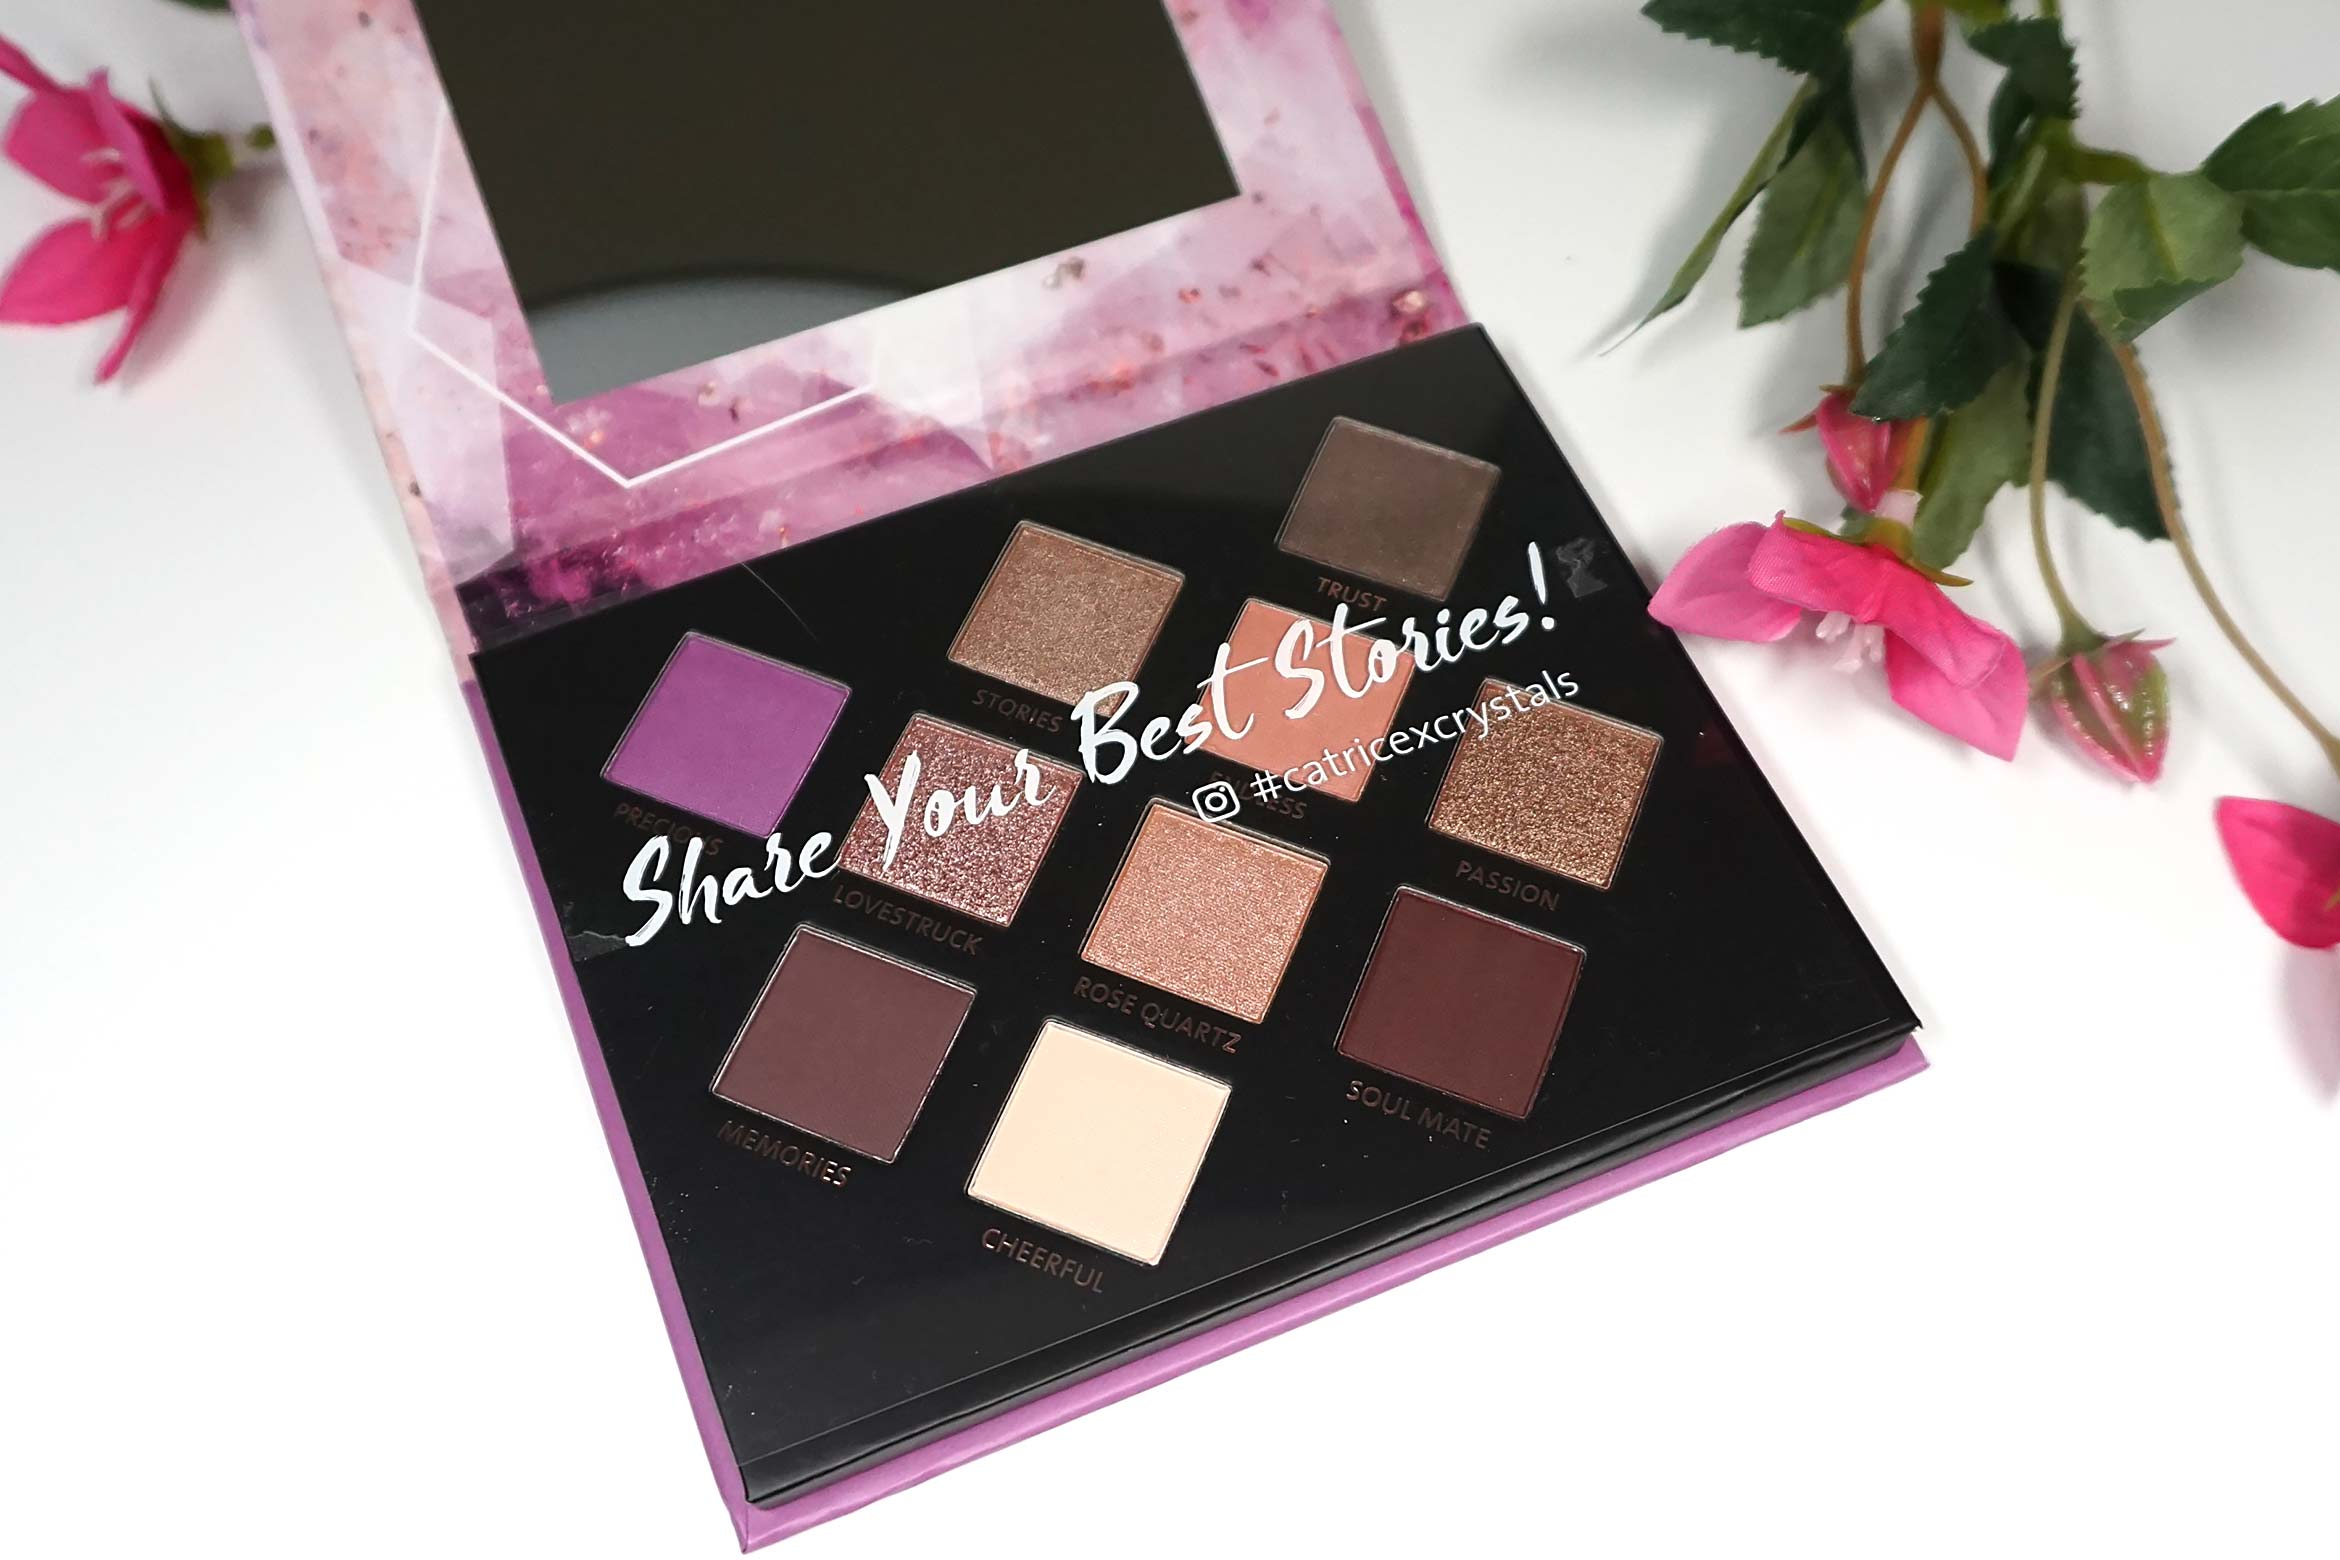 catrice-sister-of-my-soul-crystallized-eyeshadow-palette-review-3